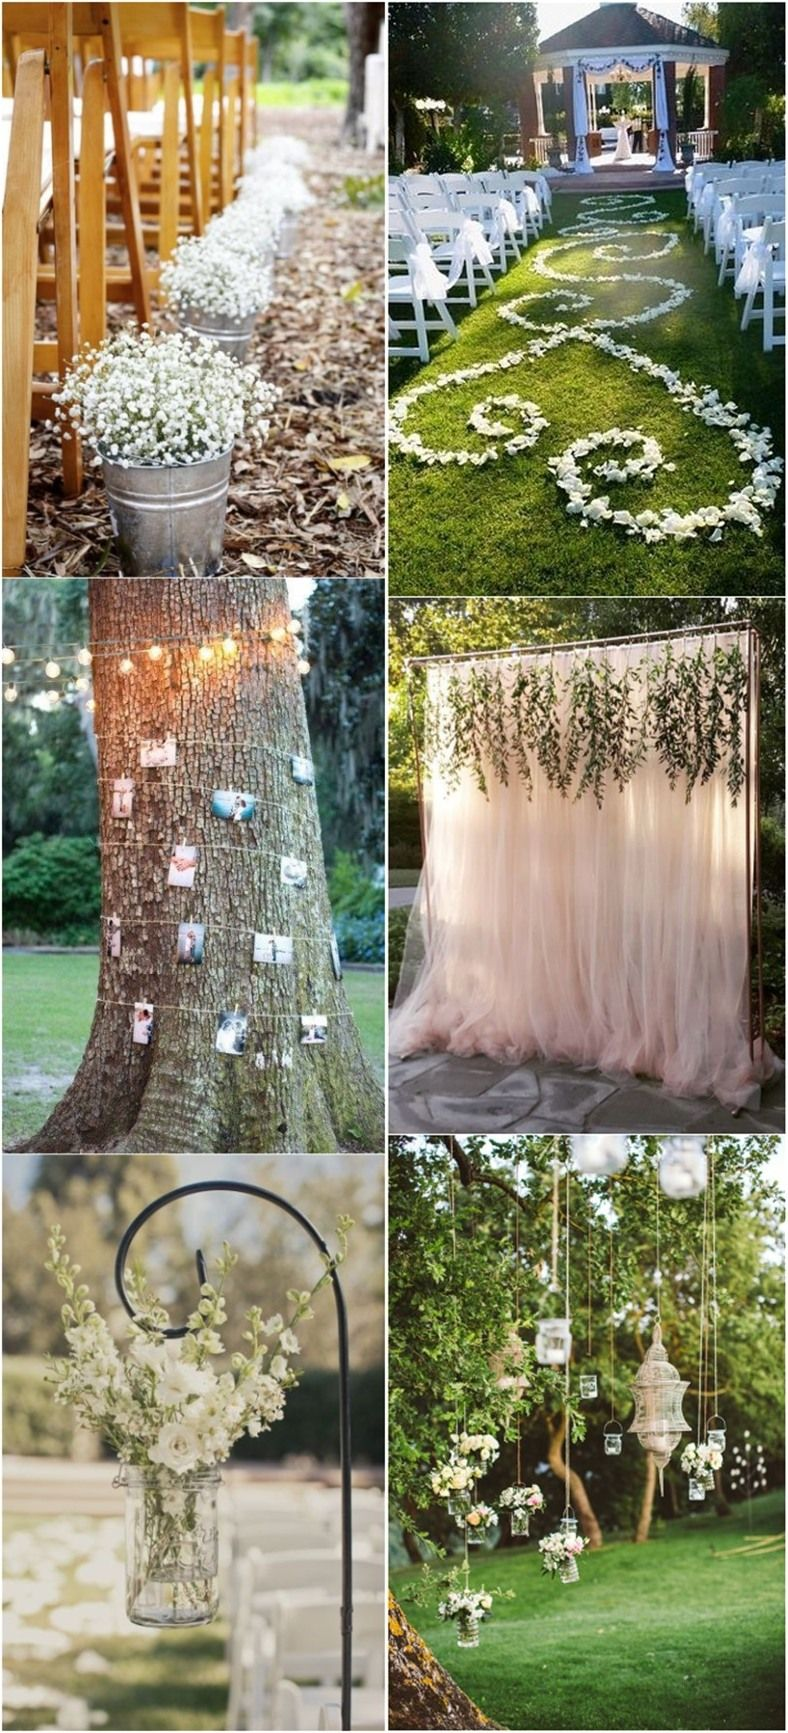 20 genius outdoor wedding ideas pinterest casamento decorao genius outdoor wedding ideas outdoor wedding decorations httpweddinginclude junglespirit